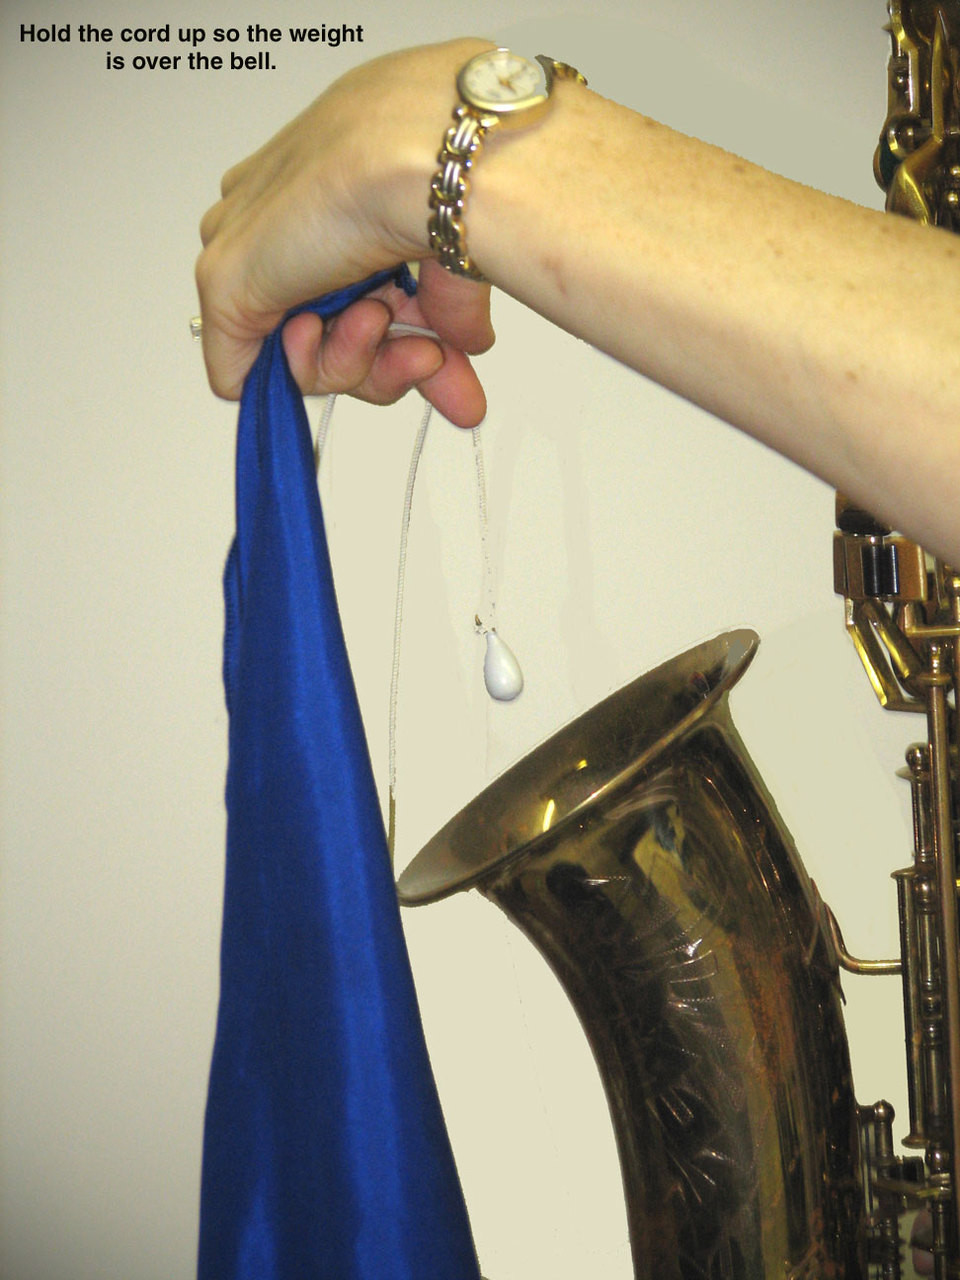 Hodge Alto Sax Silk Swab Step 1 - Hold weight over bell